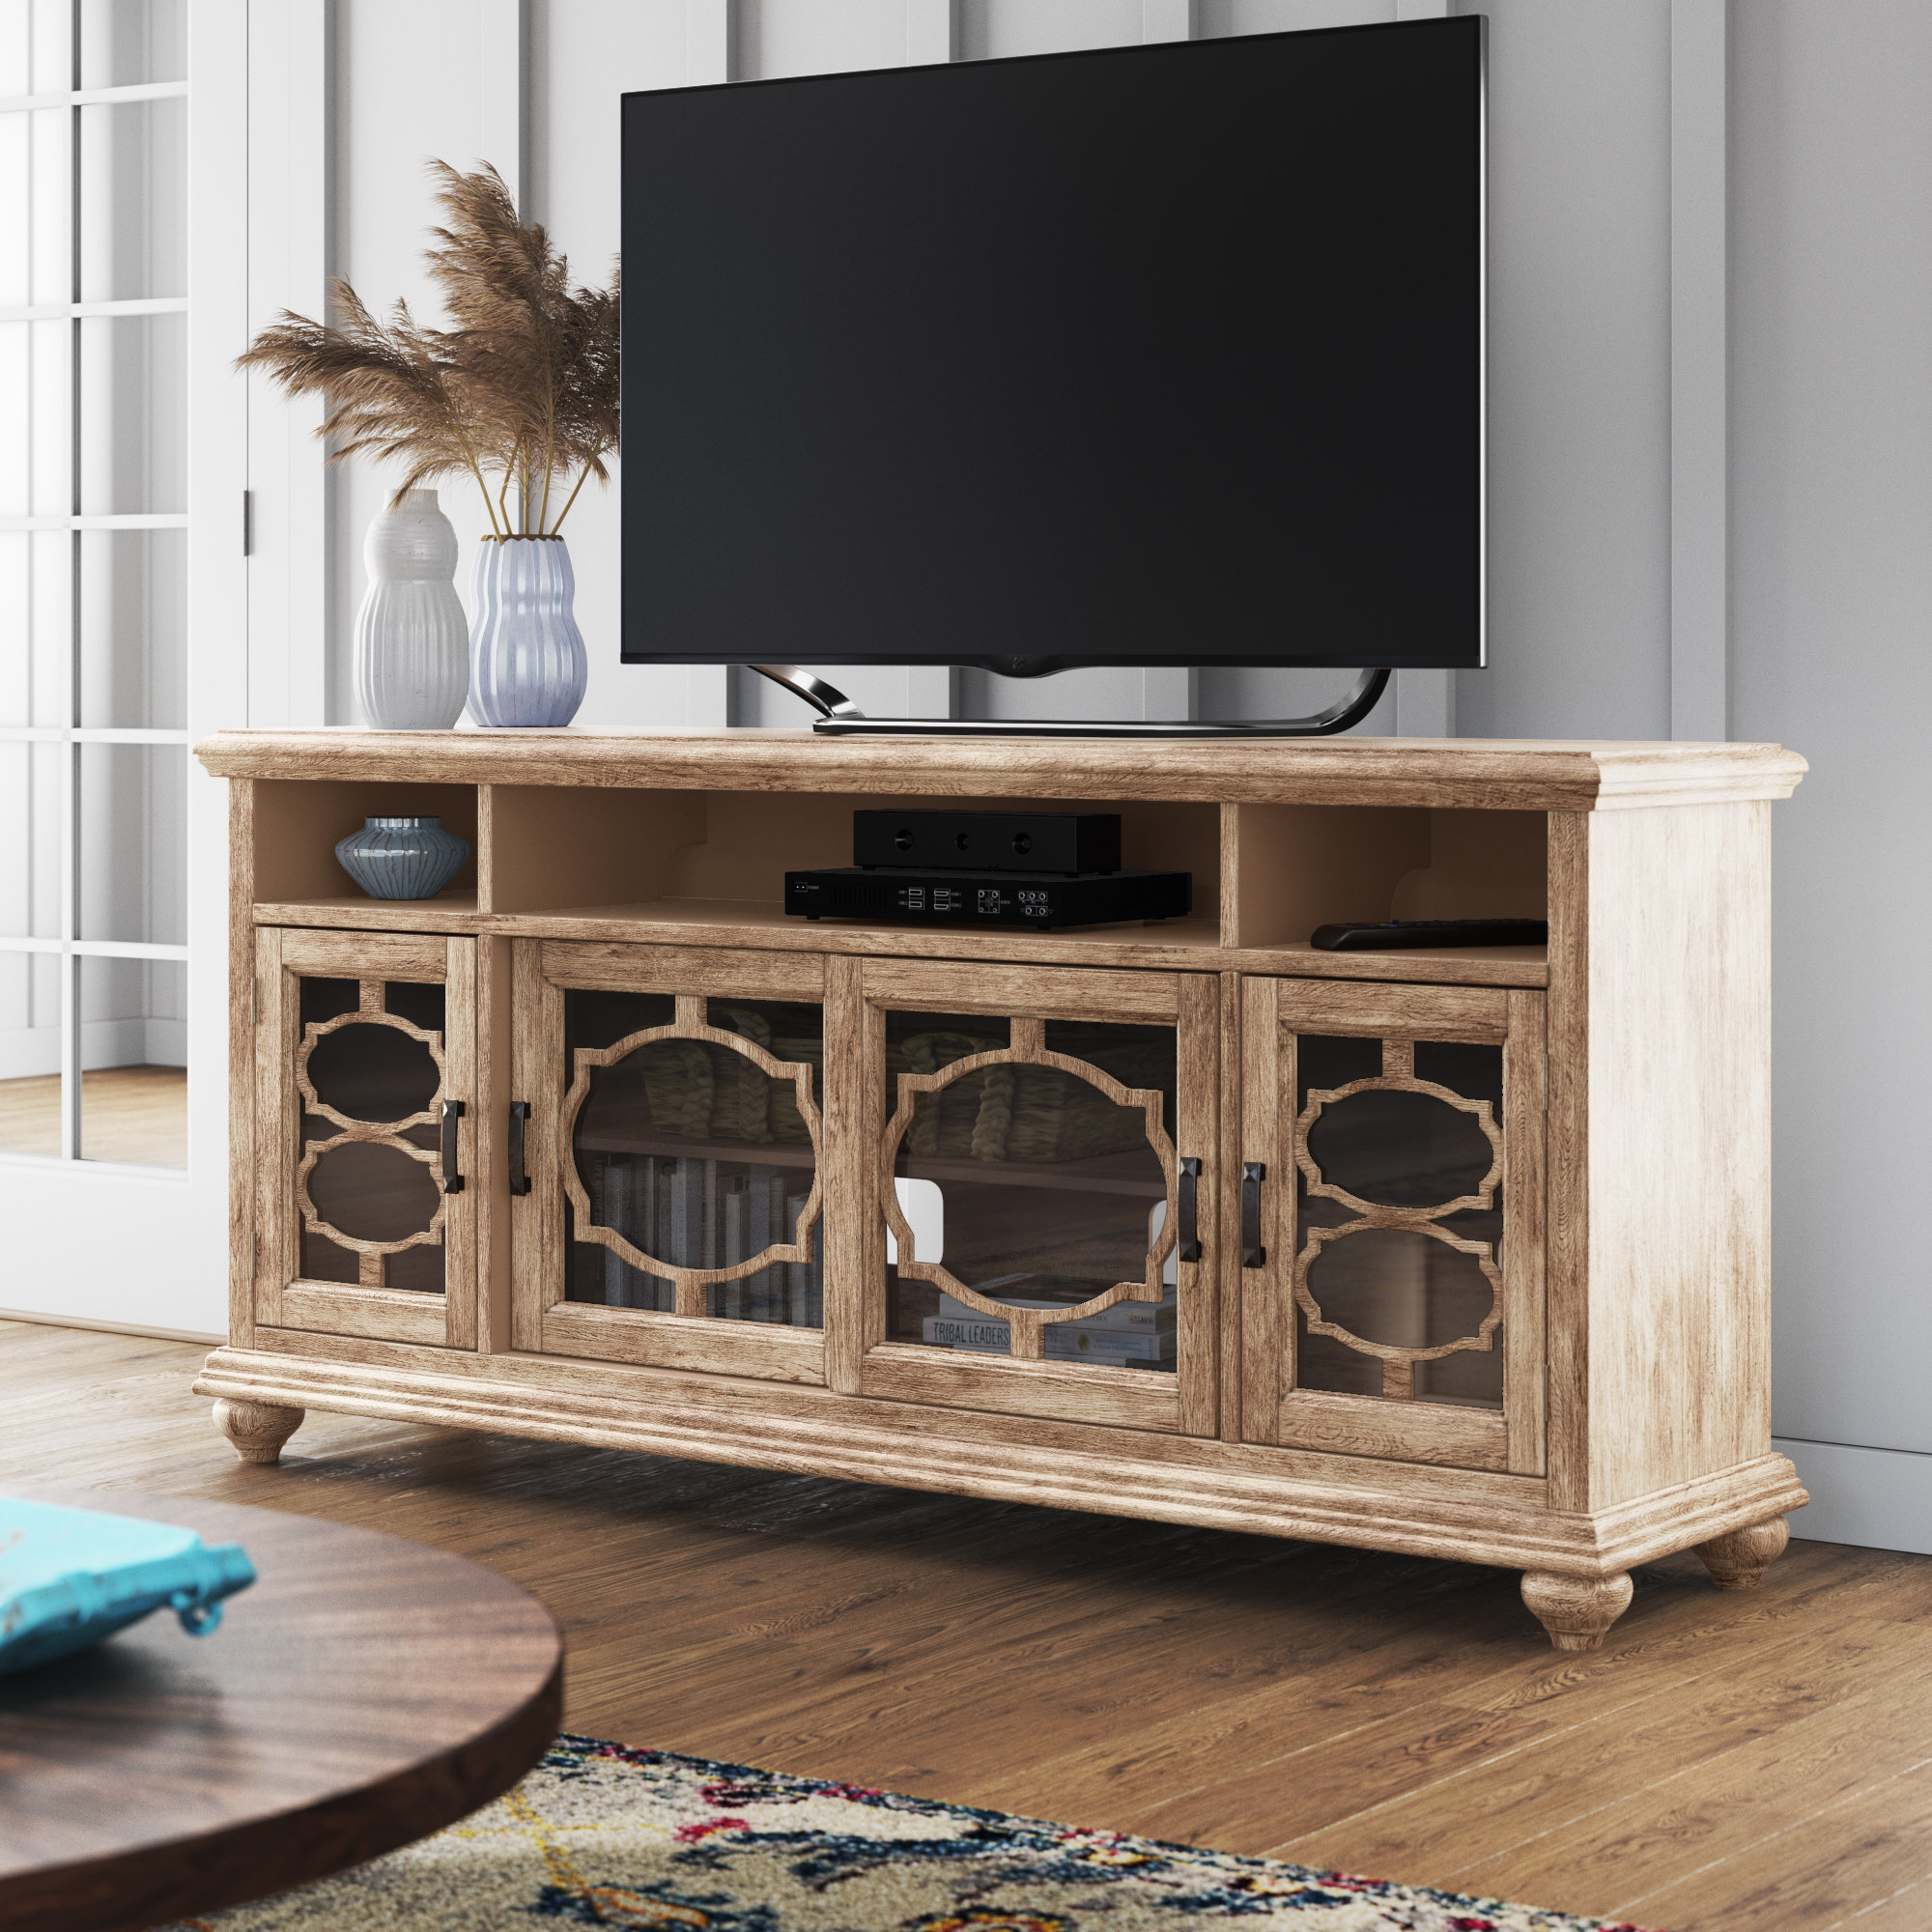 """West Newbury Tv Stand For Tvs Up To 70"""" Throughout Most Recent Colefax Vintage Tv Stands For Tvs Up To 78"""" (#19 of 20)"""